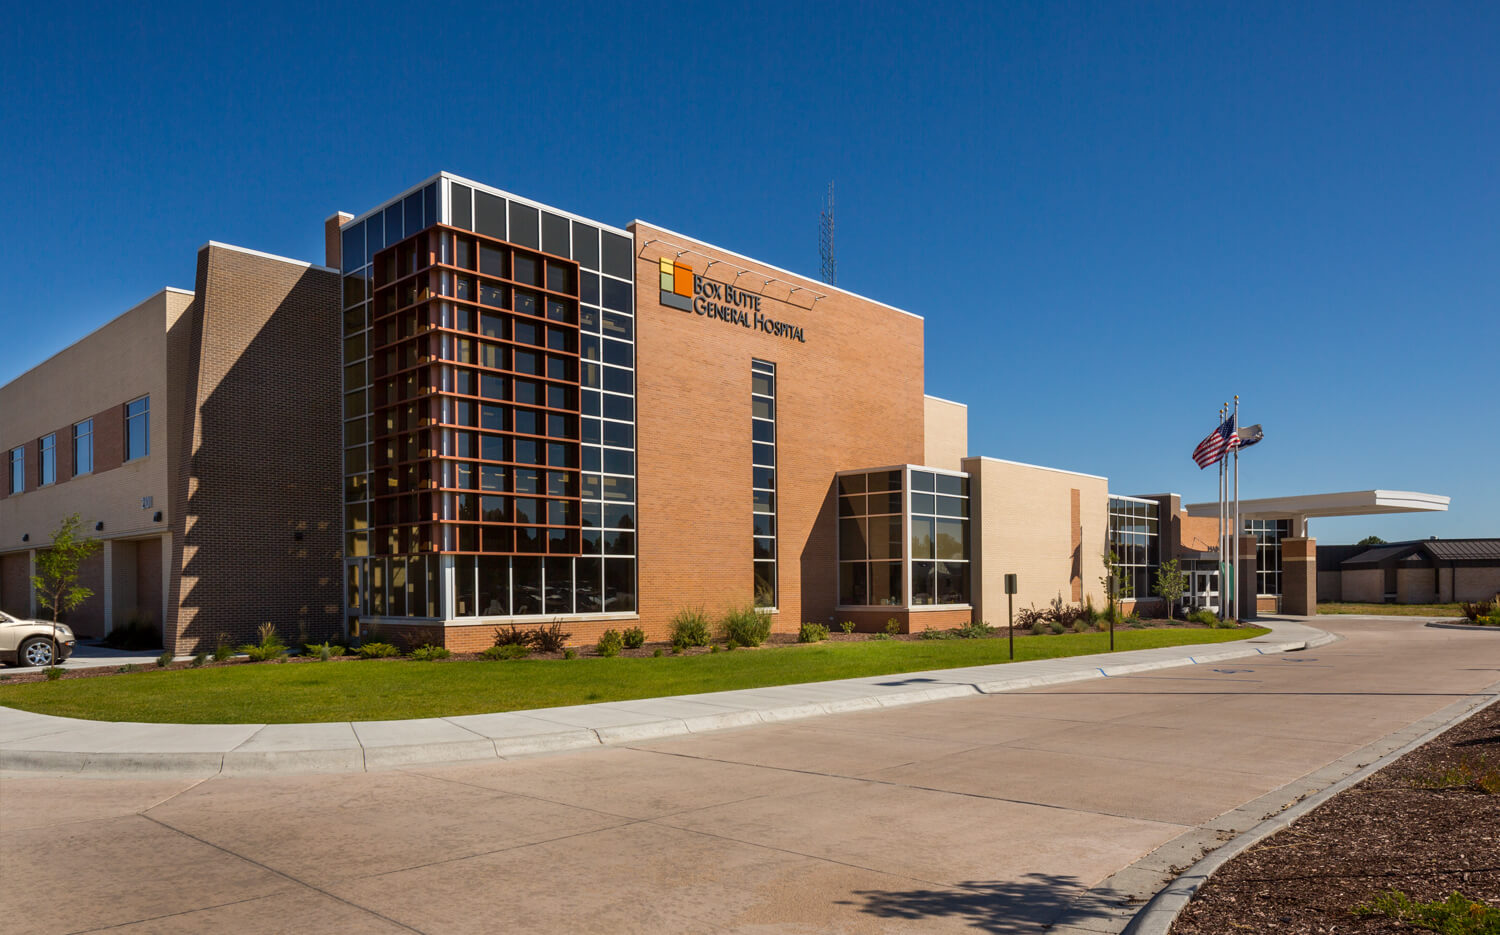 cmba-architects-portfolio-box-butte-general-hospital-exterior